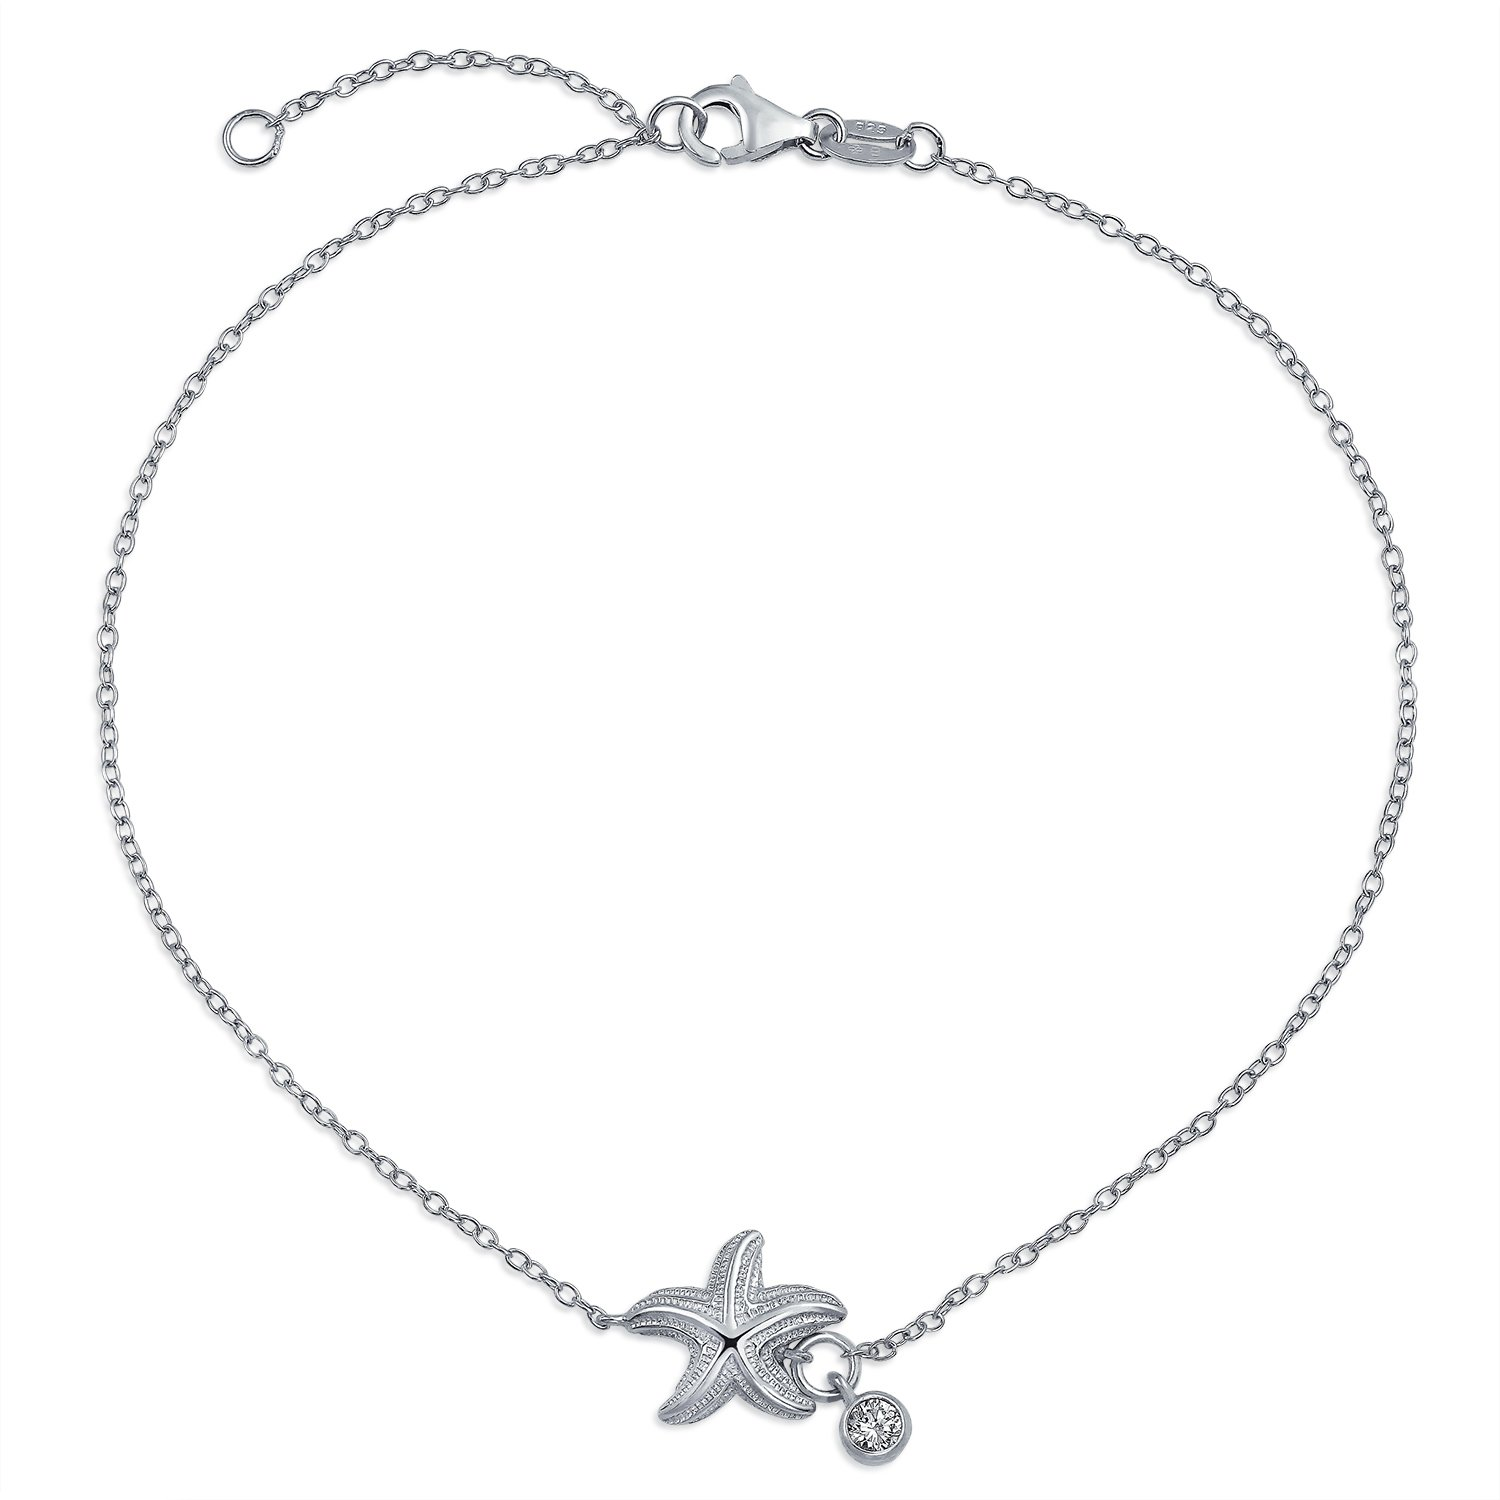 Bling Jewelry 925 Silver Solitaire CZ Charm Nautical Starfish Anklet 9in PFS-54-0362-S